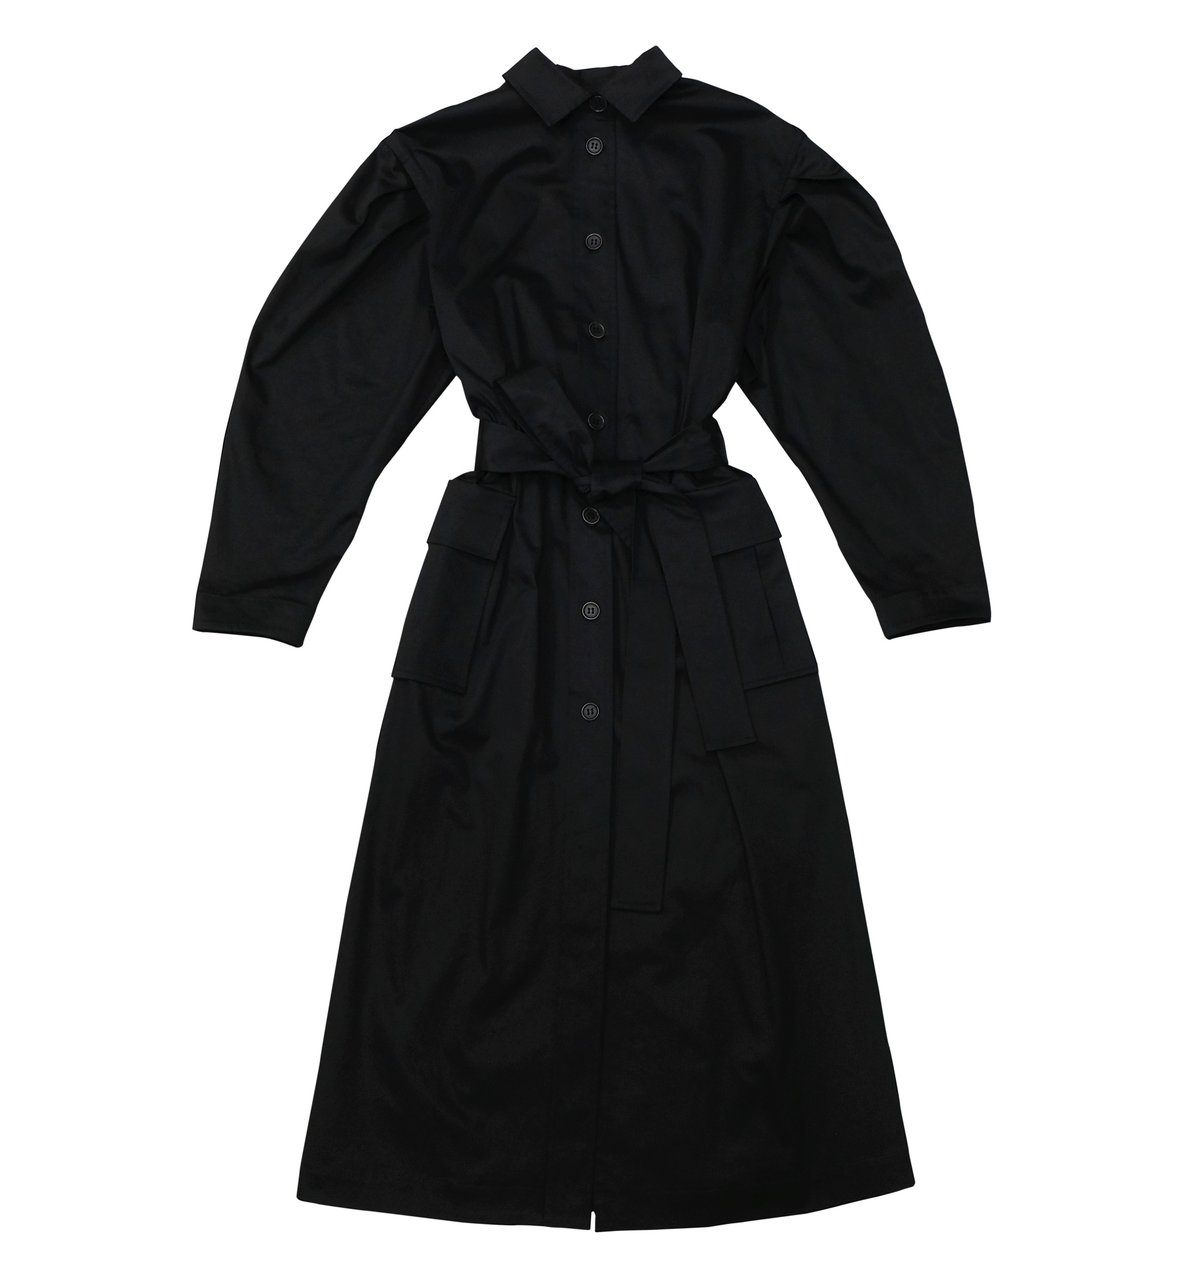 Mid-length shirt dress in black  270€